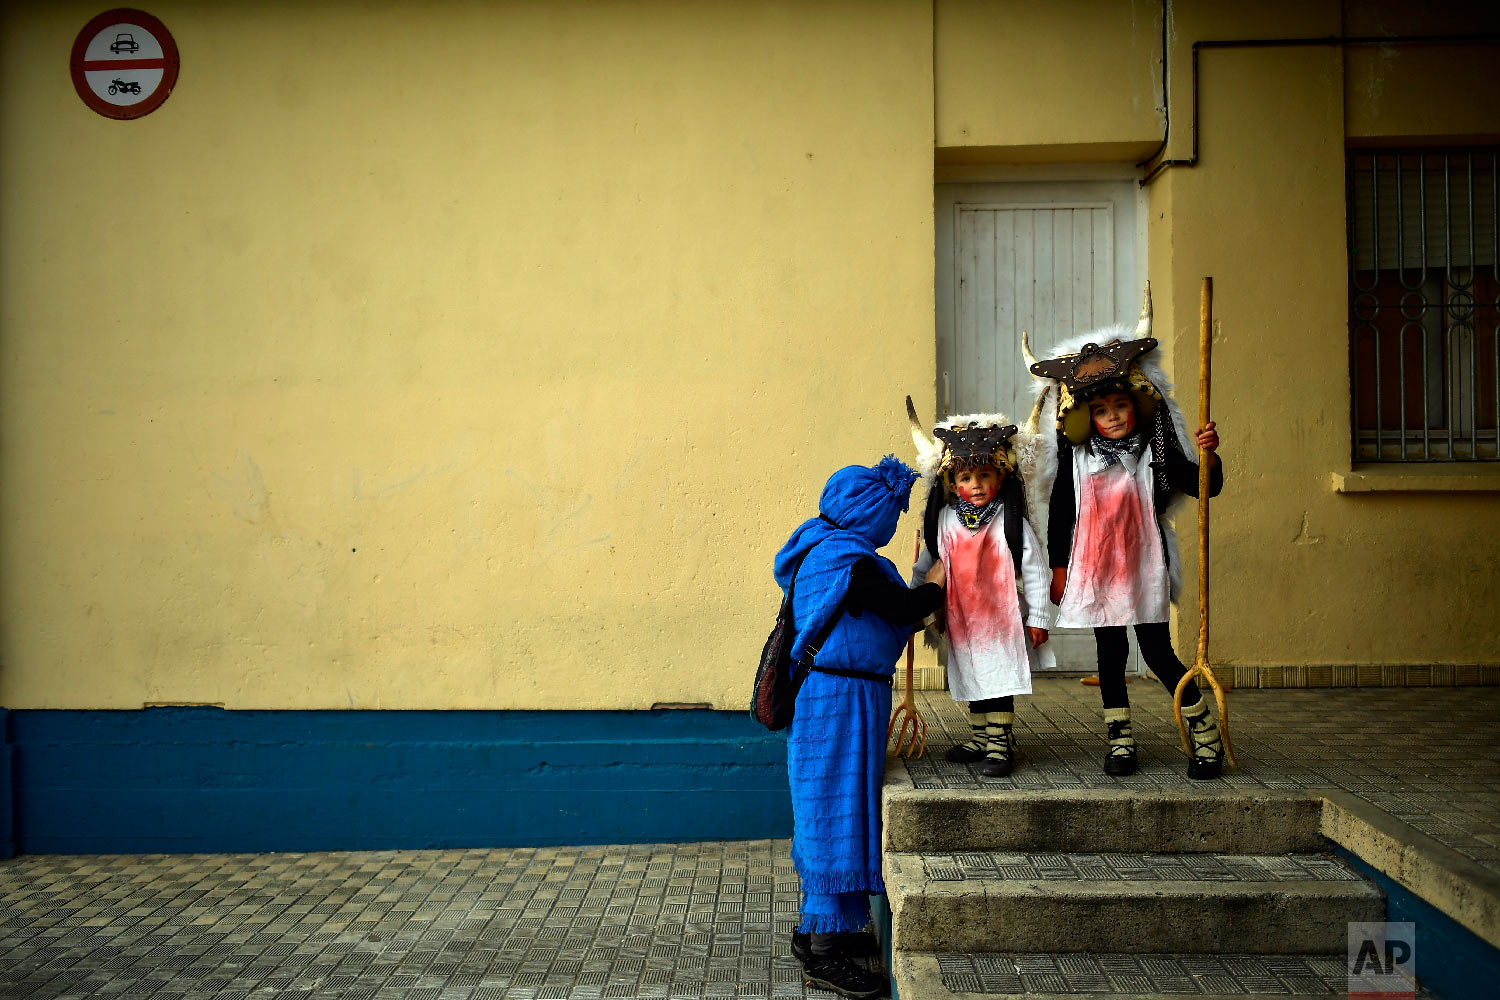 "Young ""Momotxorros "" prepare to take part in the carnival wearing typical carnival dress, in Alsasua, northern Spain, Tuesday, March 5, 2019. (AP Photo/Alvaro Barrientos)"